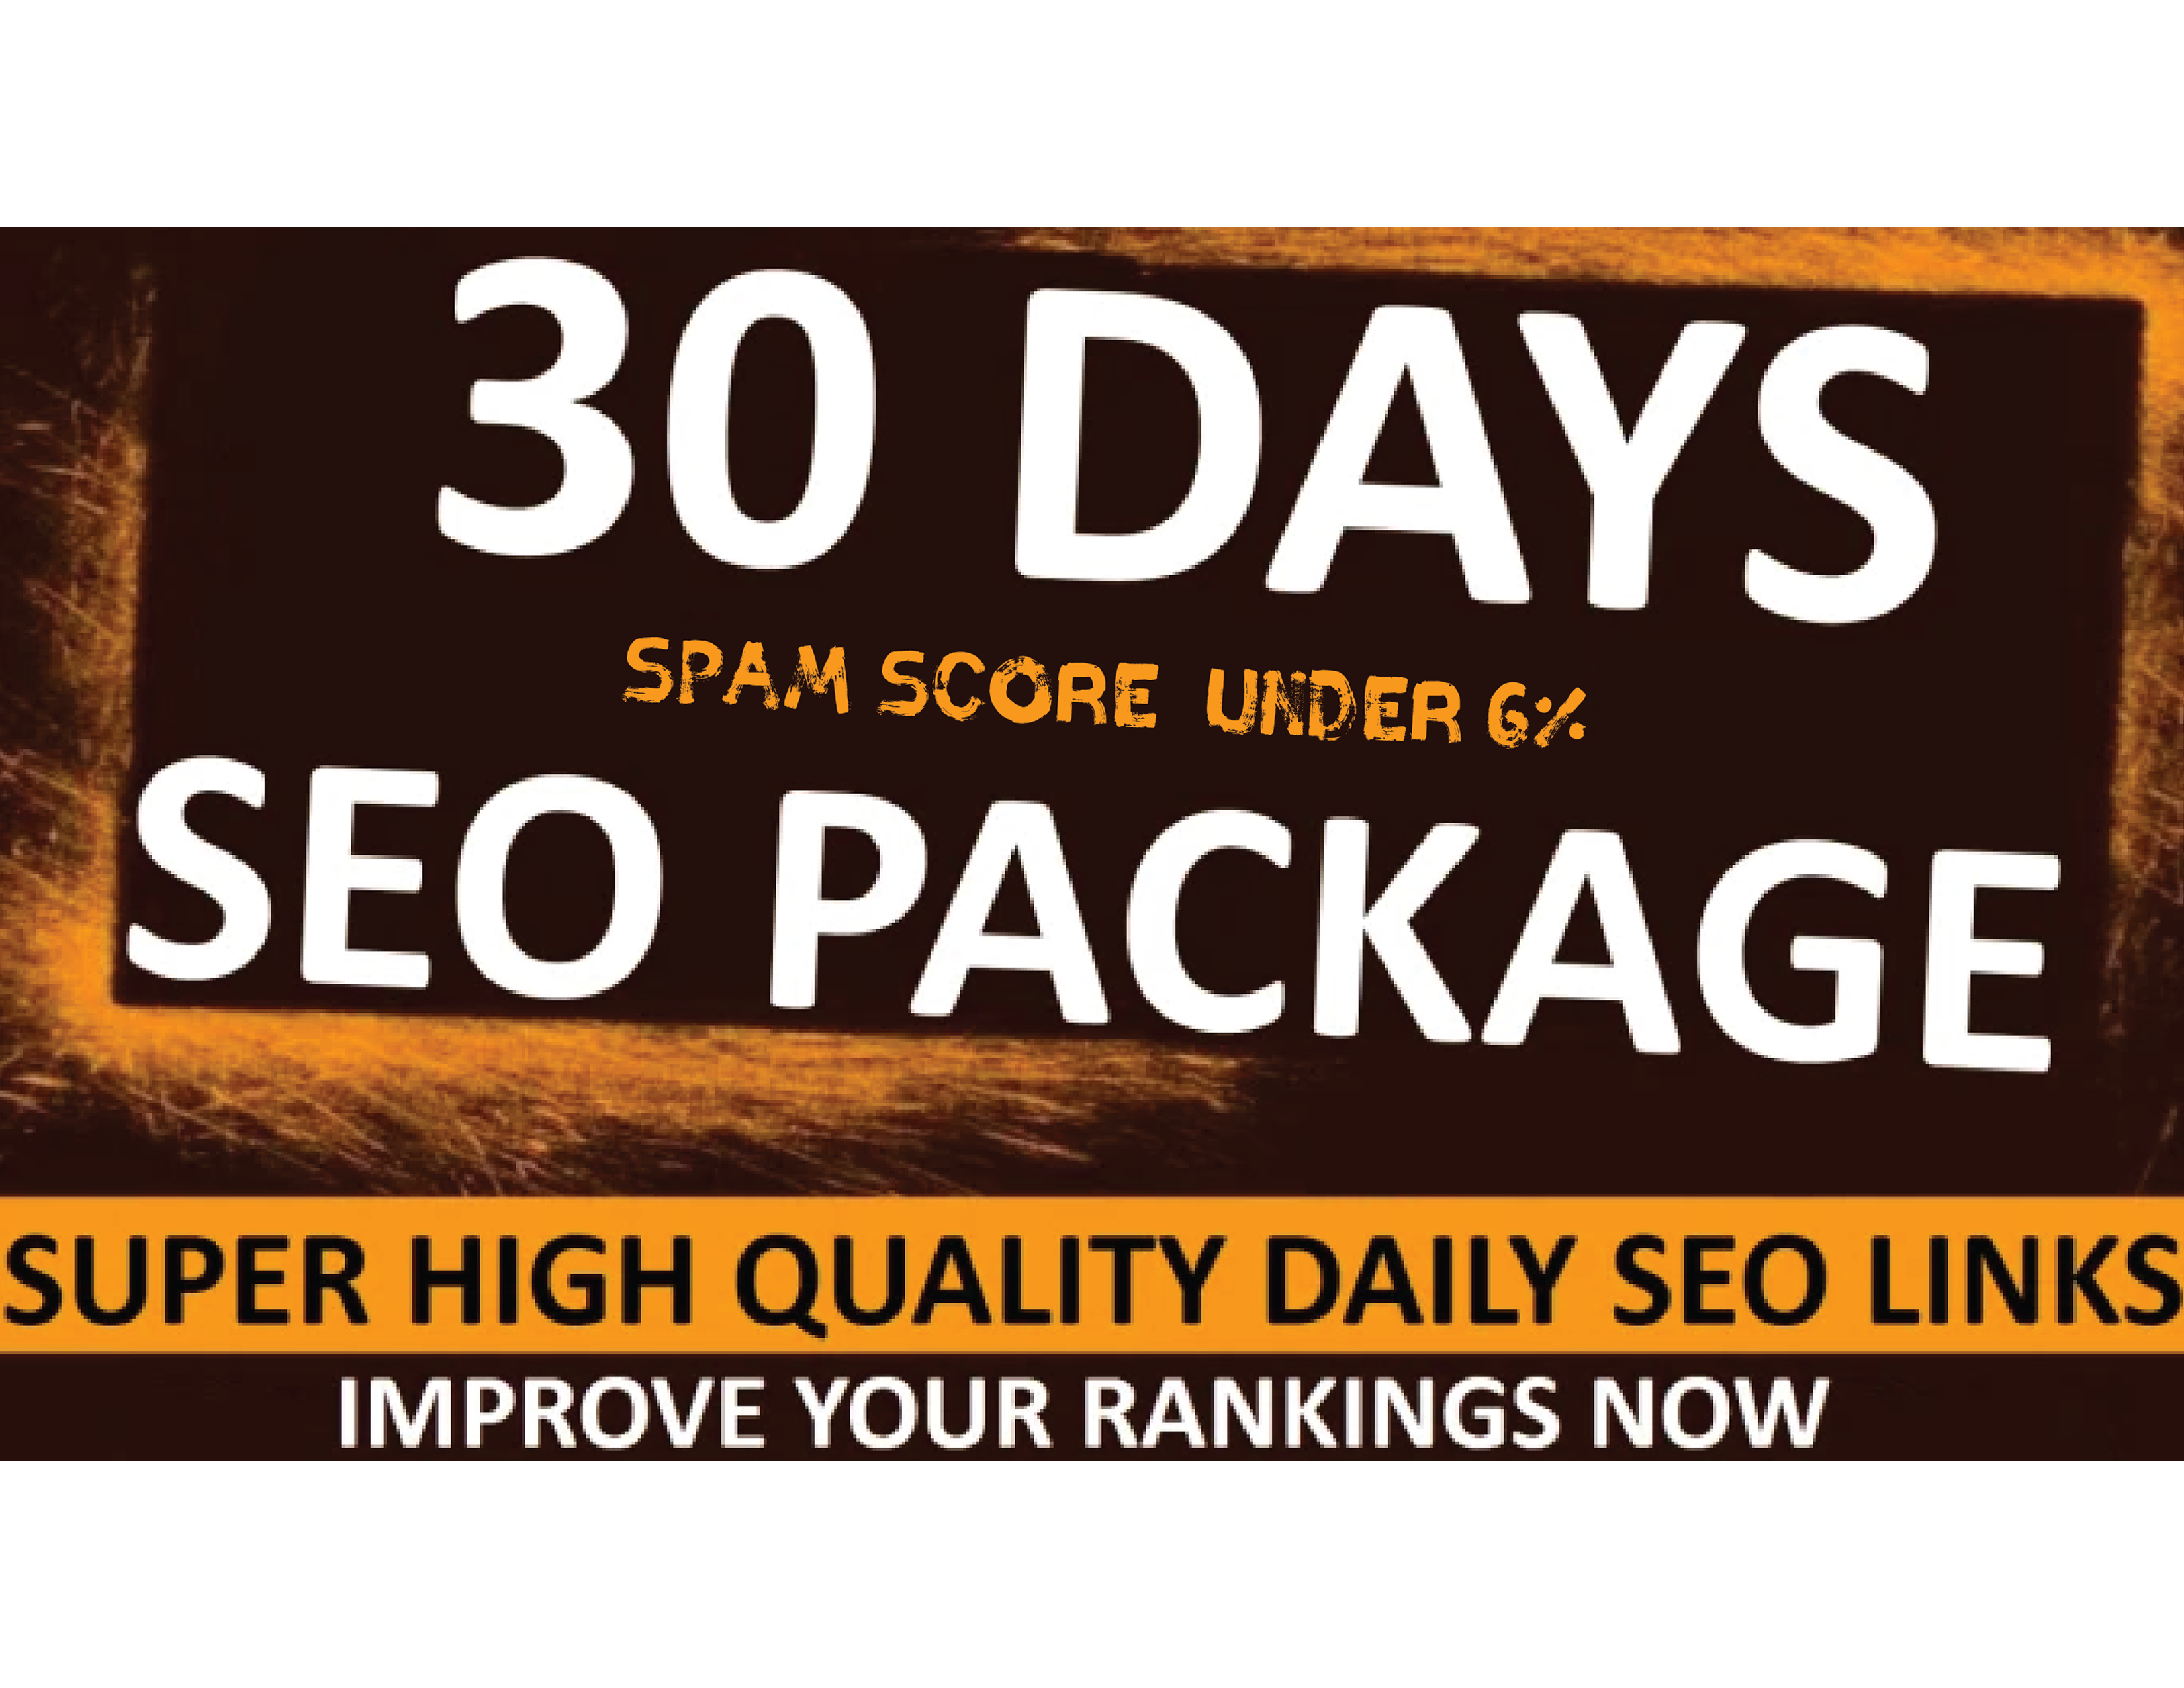 Do Daily Dripfeed 5 Dofollow Backlinks For 30 Days for